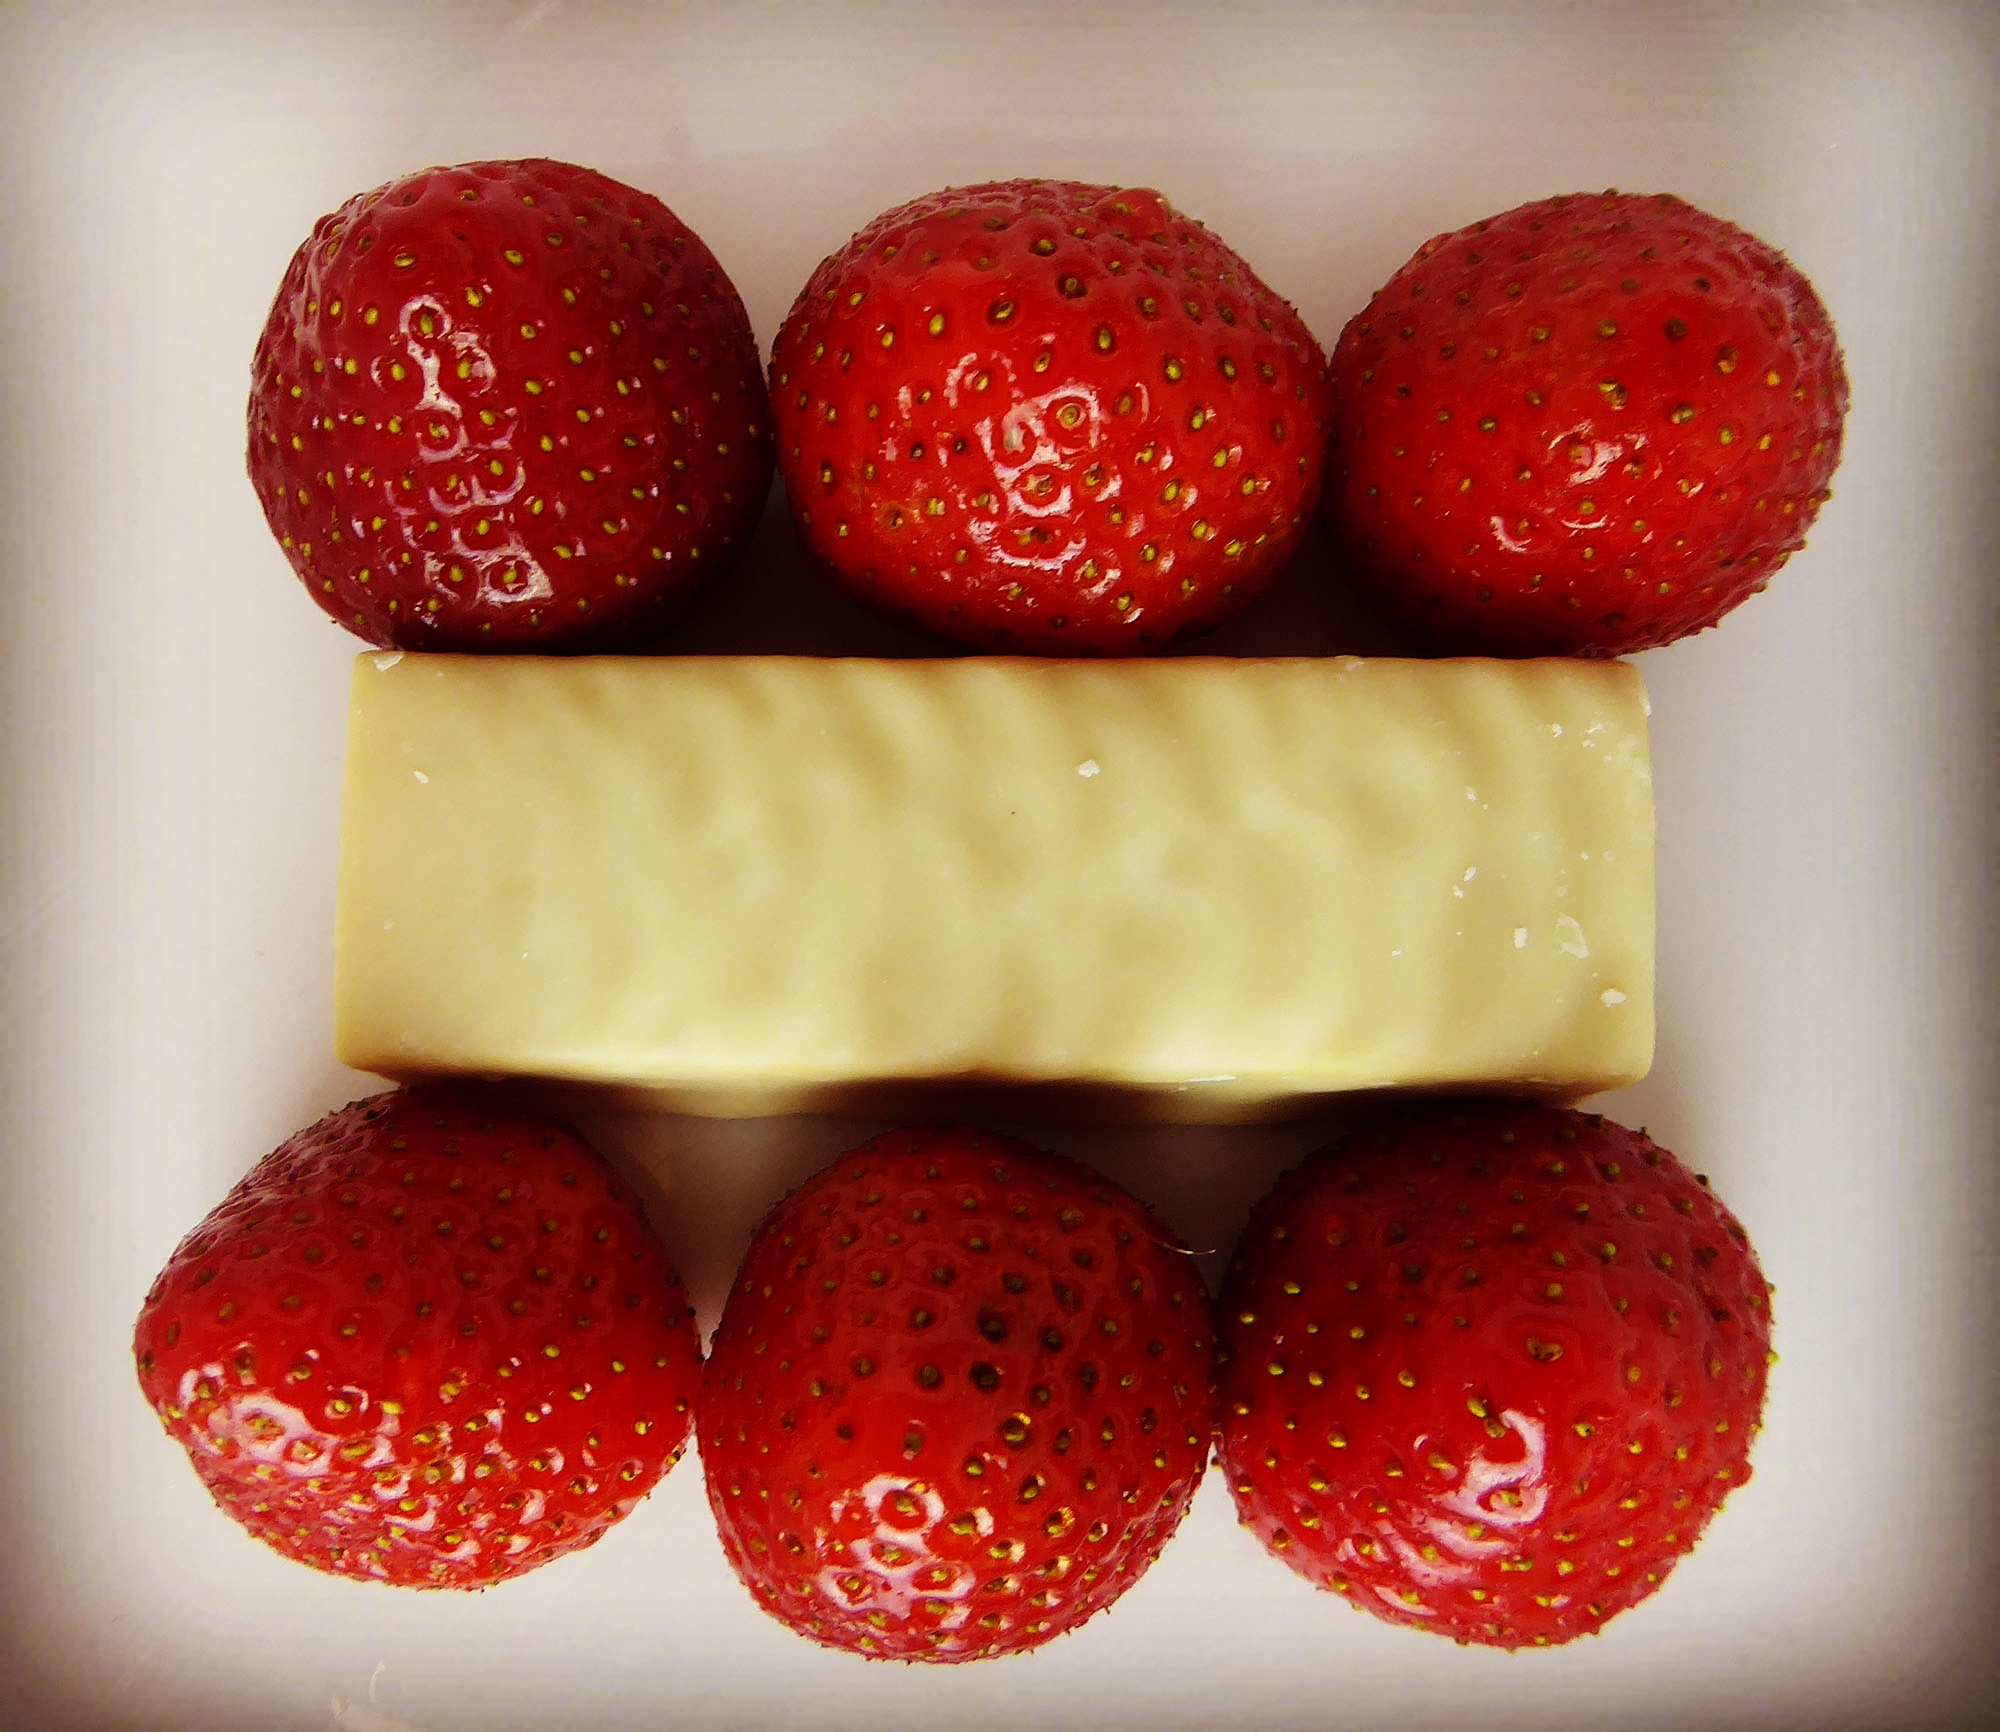 Nutrend Exelent Protein Bar Pineapple Coconut Yoghurt Strawberry